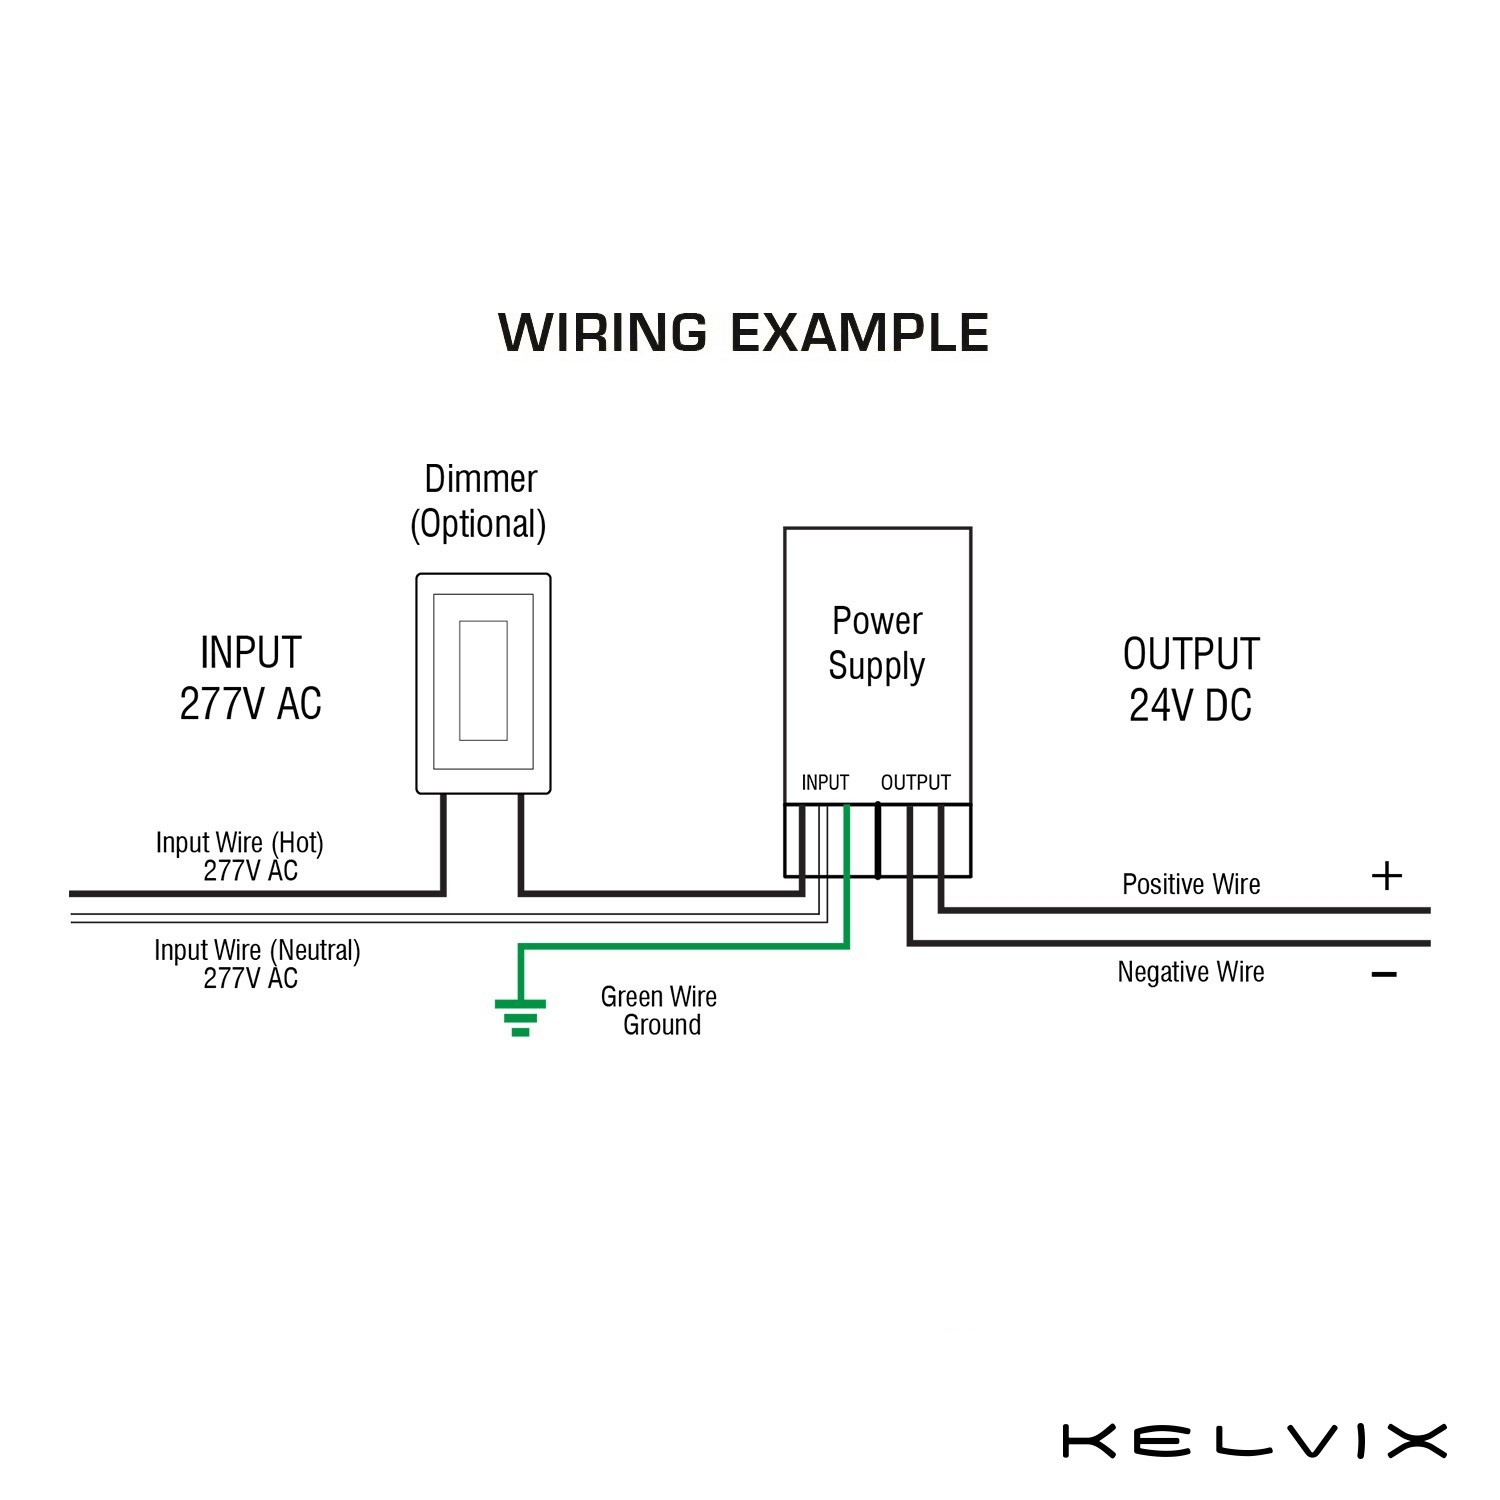 277 volt ballast wiring diagram wiring diagram for 277 volt lighting fresh 277 volt wiring diagram 240 volt cell wiring 17r 120v vs 277v wiring schema wiring diagrams